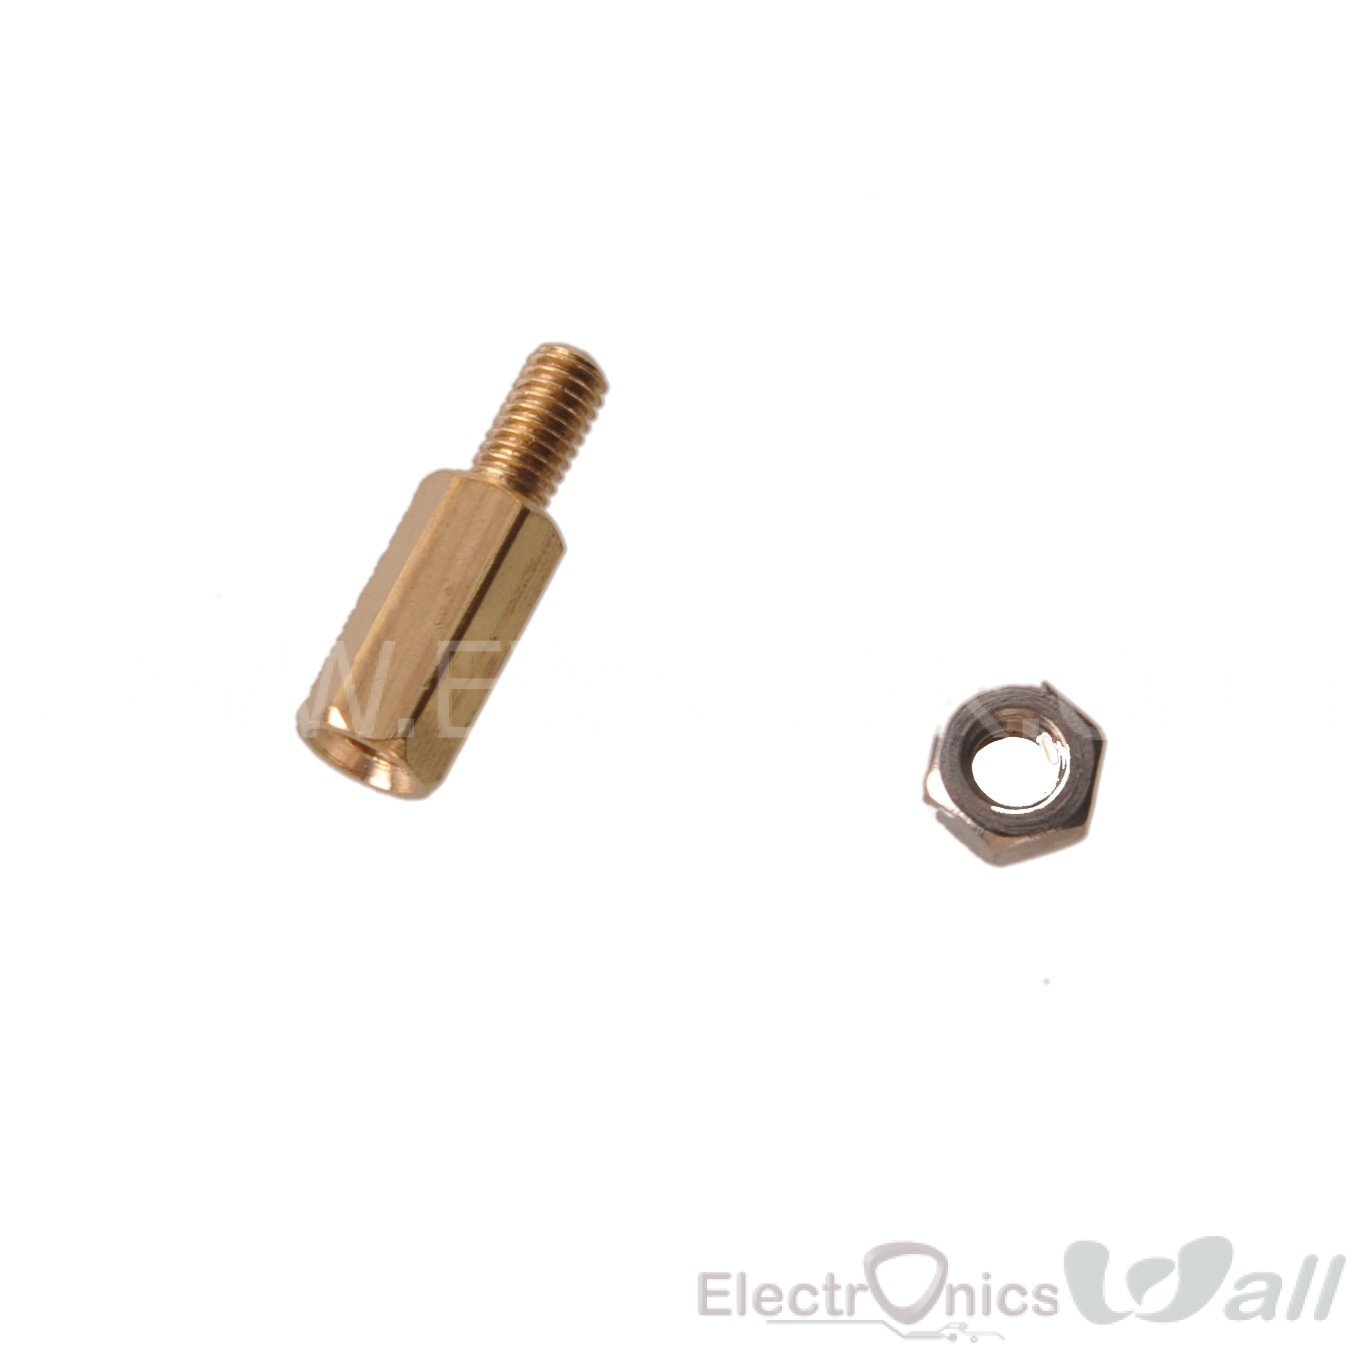 Spacer Copper Cylinder Hexagon M3X10mm Studs with 6mm Screw Nut